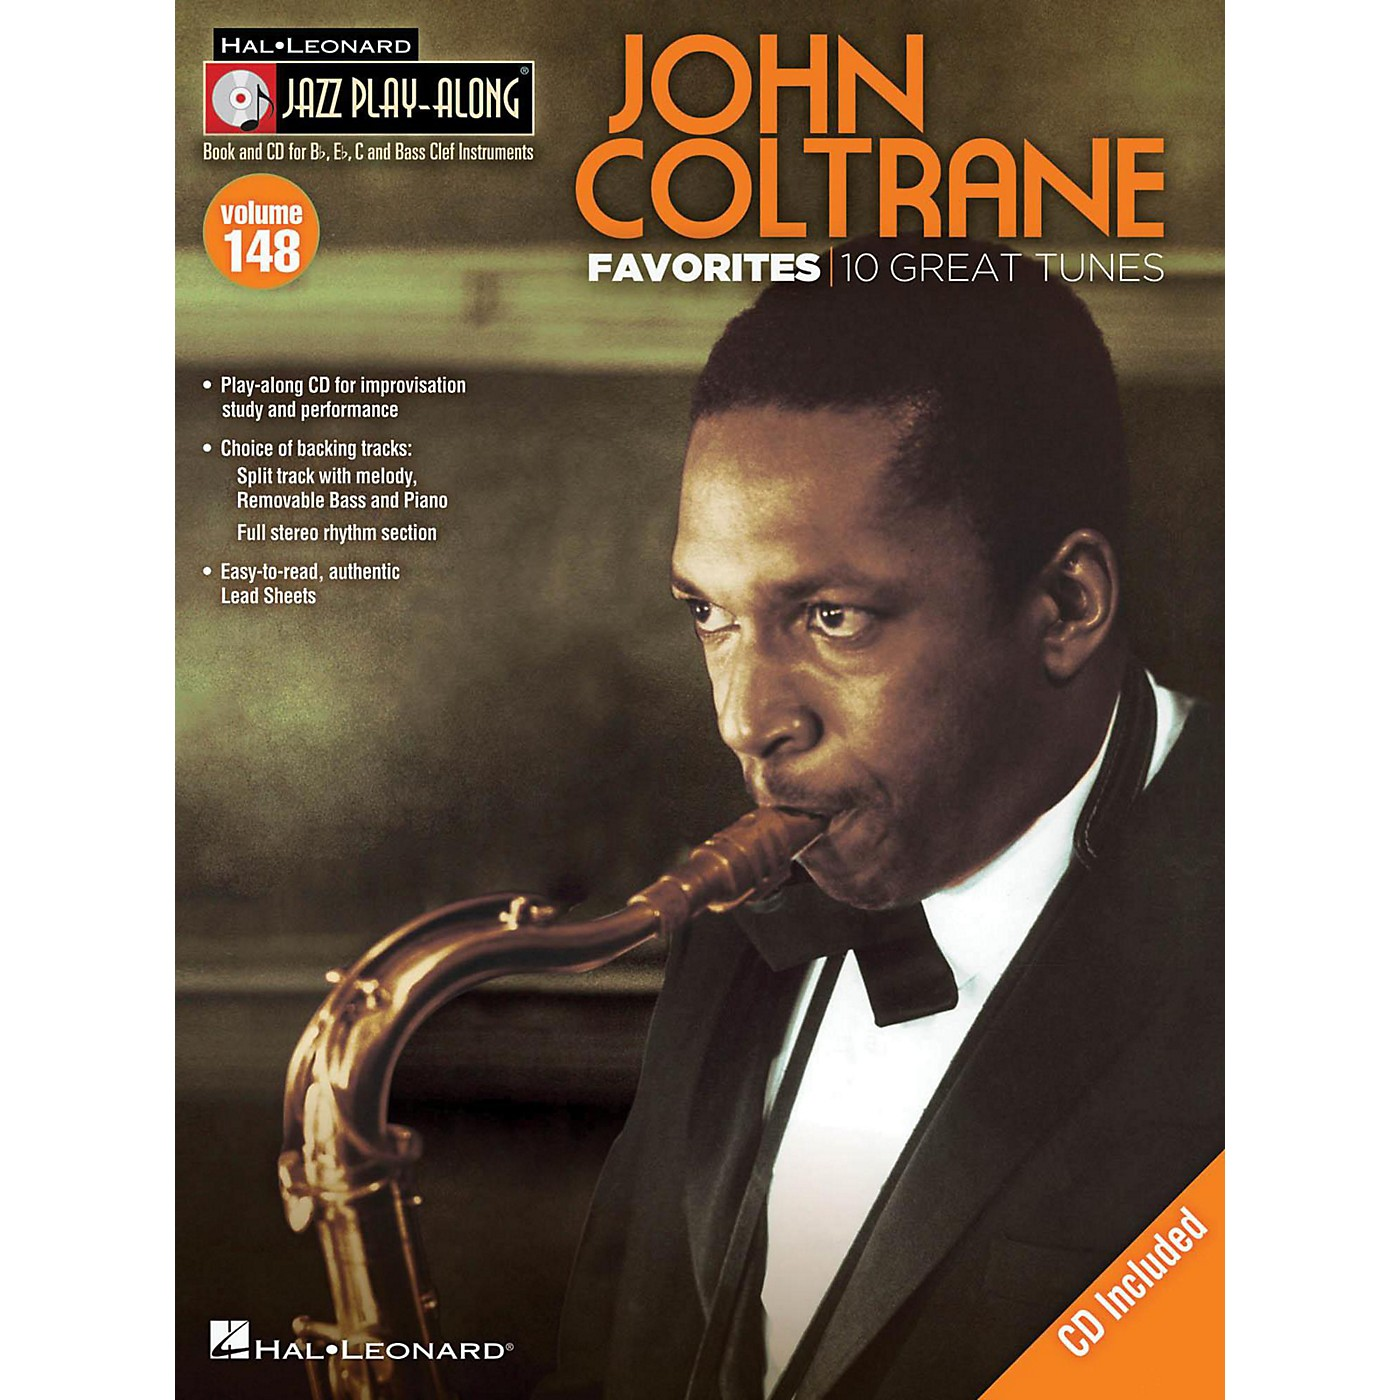 Hal Leonard John Coltrane Favorites - Jazz Play-Along Volume 148 Book/CD thumbnail